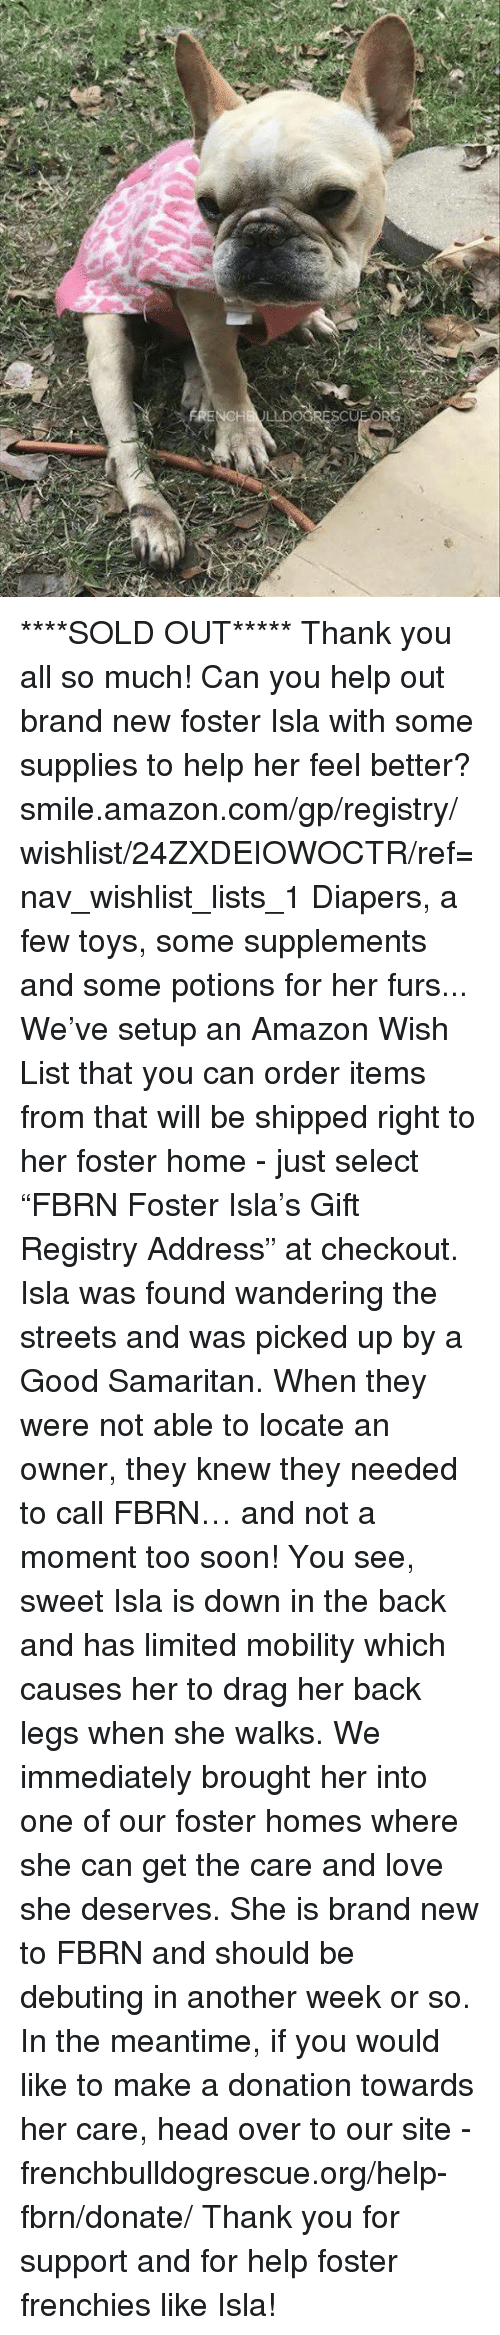 "frenchy: LDOORES ****SOLD OUT***** Thank you all so much!  Can you help out brand new foster Isla with some supplies to help her feel better? smile.amazon.com/gp/registry/wishlist/24ZXDEIOWOCTR/ref=nav_wishlist_lists_1  Diapers, a few toys, some supplements and some potions for her furs... We've setup an Amazon Wish List that you can order items from that will be shipped right to her foster home - just select ""FBRN Foster Isla's Gift Registry Address"" at checkout.  Isla was found wandering the streets and was picked up by a Good Samaritan. When they were not able to locate an owner, they knew they needed to call FBRN… and not a moment too soon!  You see, sweet Isla is down in the back and has limited mobility which causes her to drag her back legs when she walks. We immediately brought her into one of our foster homes where she can get the care and love she deserves.   She is brand new to FBRN and should be debuting in another week or so. In the meantime, if you would like to make a donation towards her care, head over to our site - frenchbulldogrescue.org/help-fbrn/donate/ Thank you for support and for help foster frenchies like Isla!"